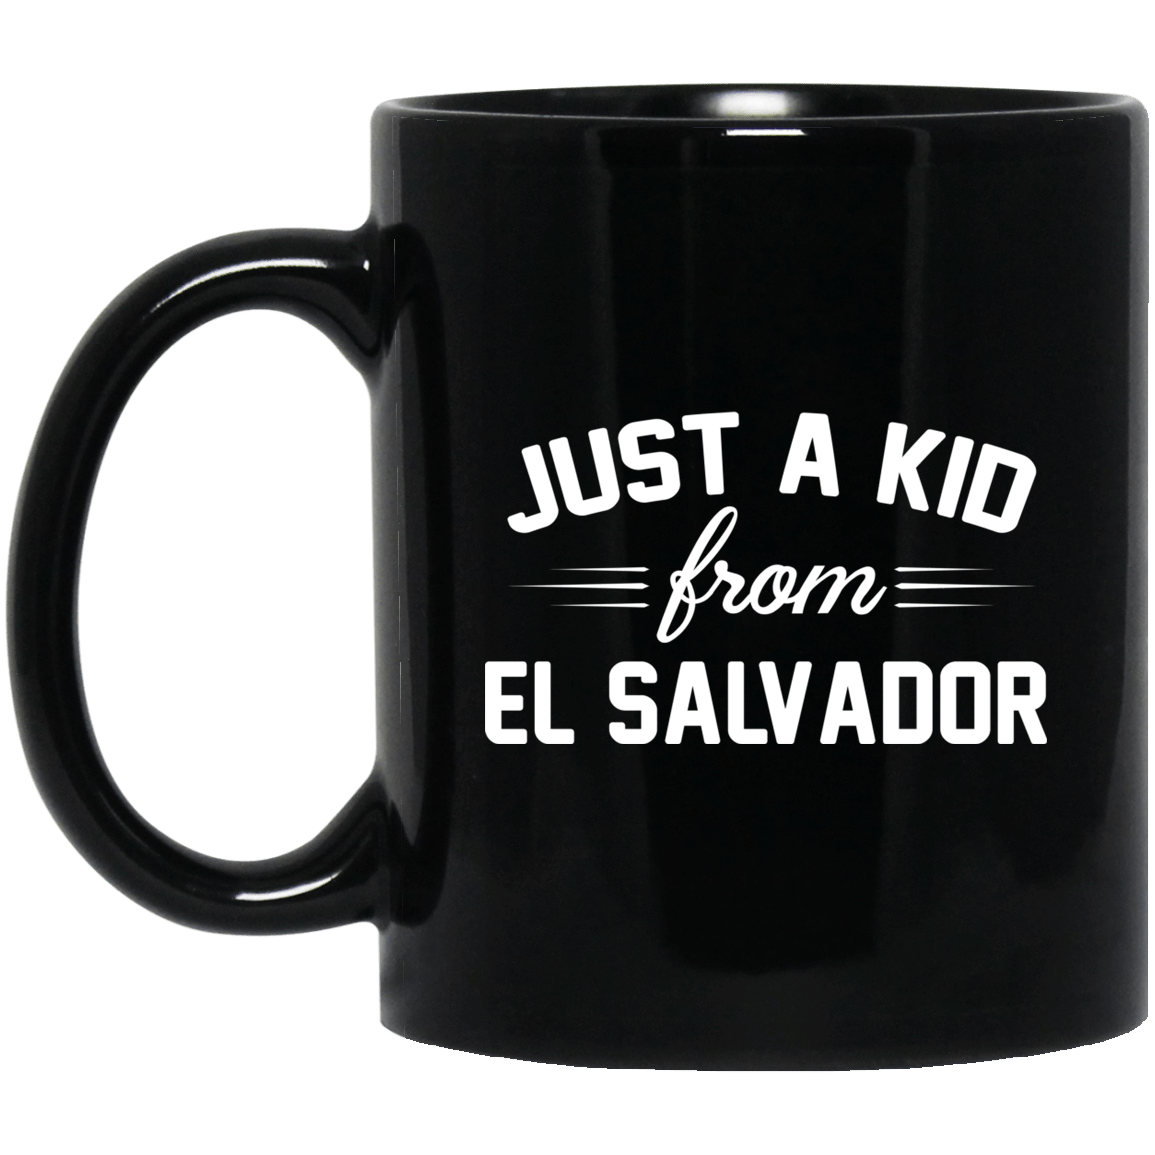 Just A Kid Store | El Salvador Mug 1065-10181-72111271-49307 - Tee Ript